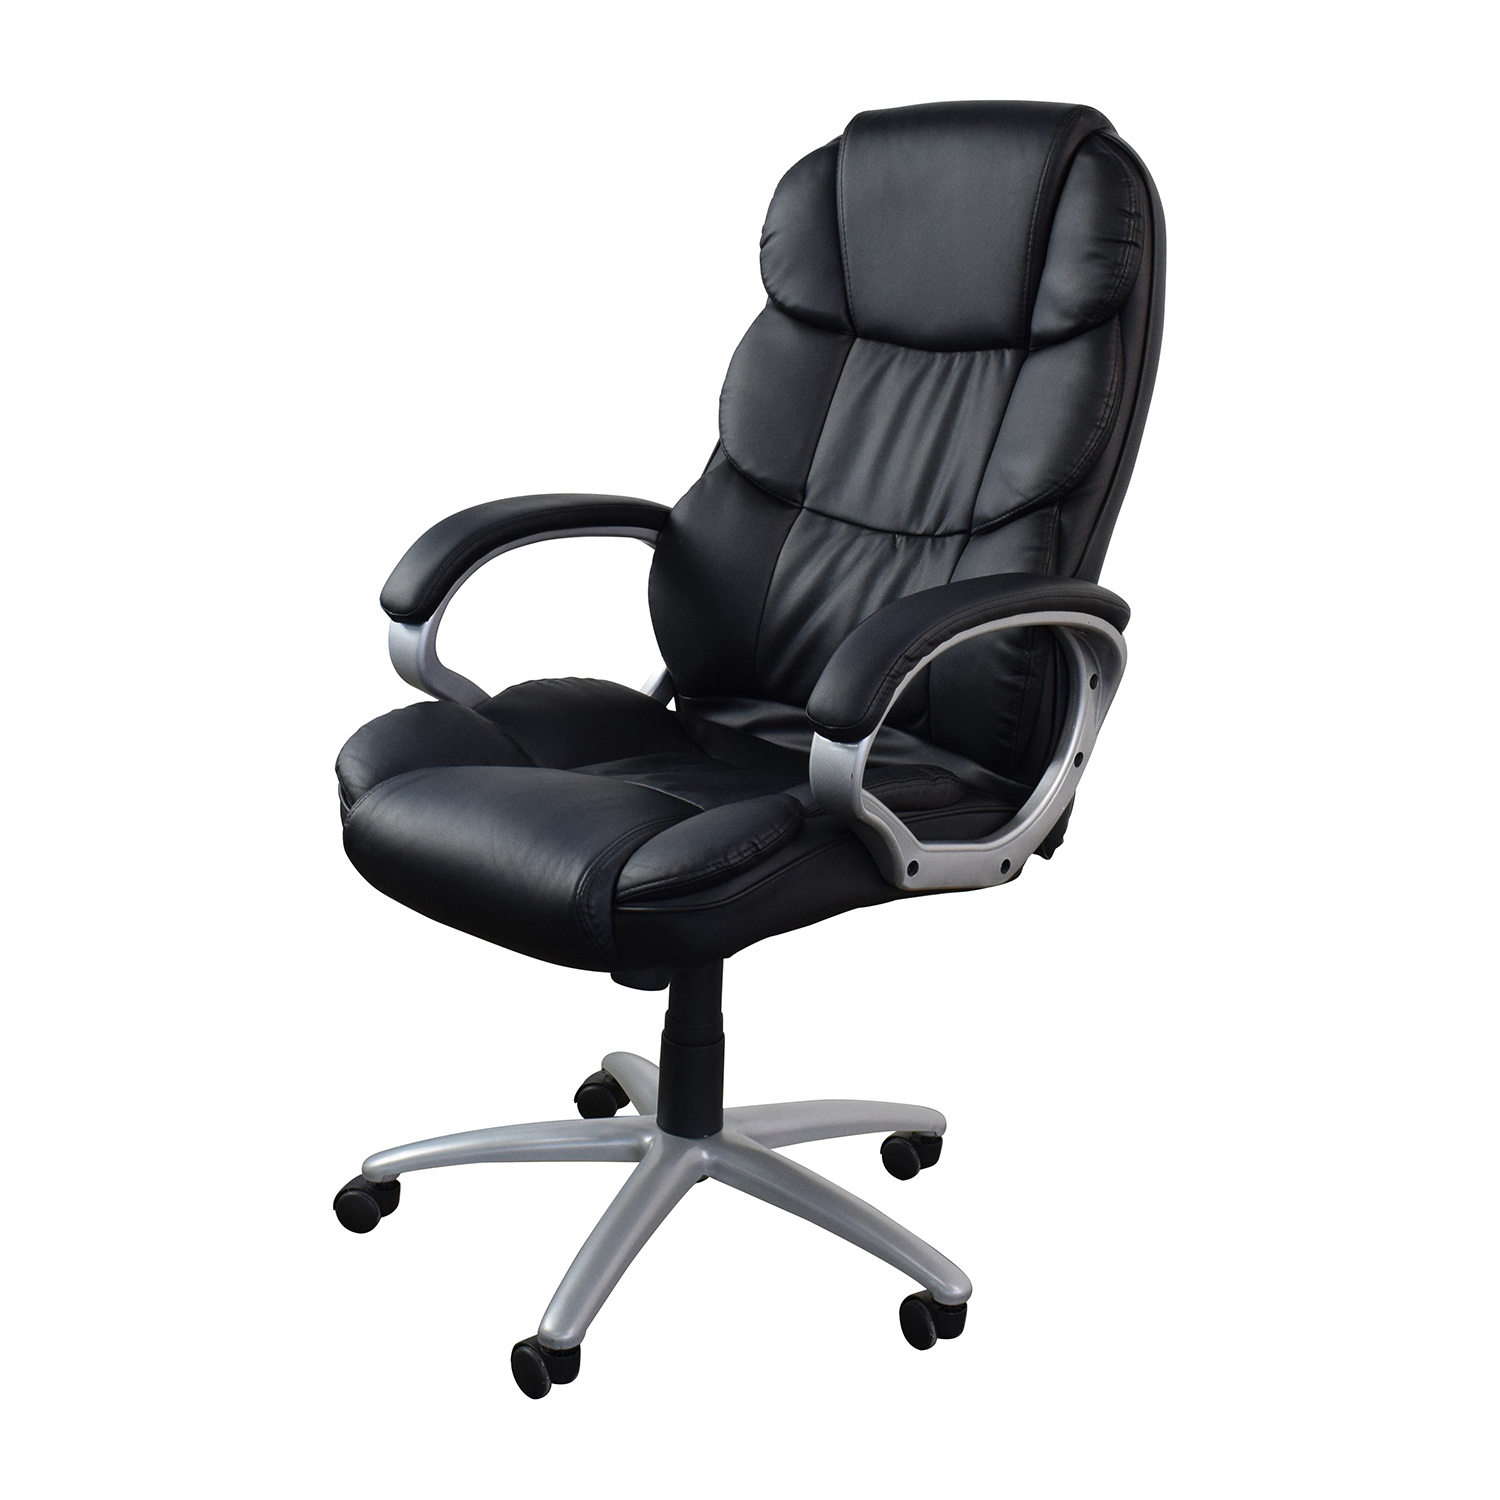 57 off black leather executive office chair chairs for Home office chairs leather